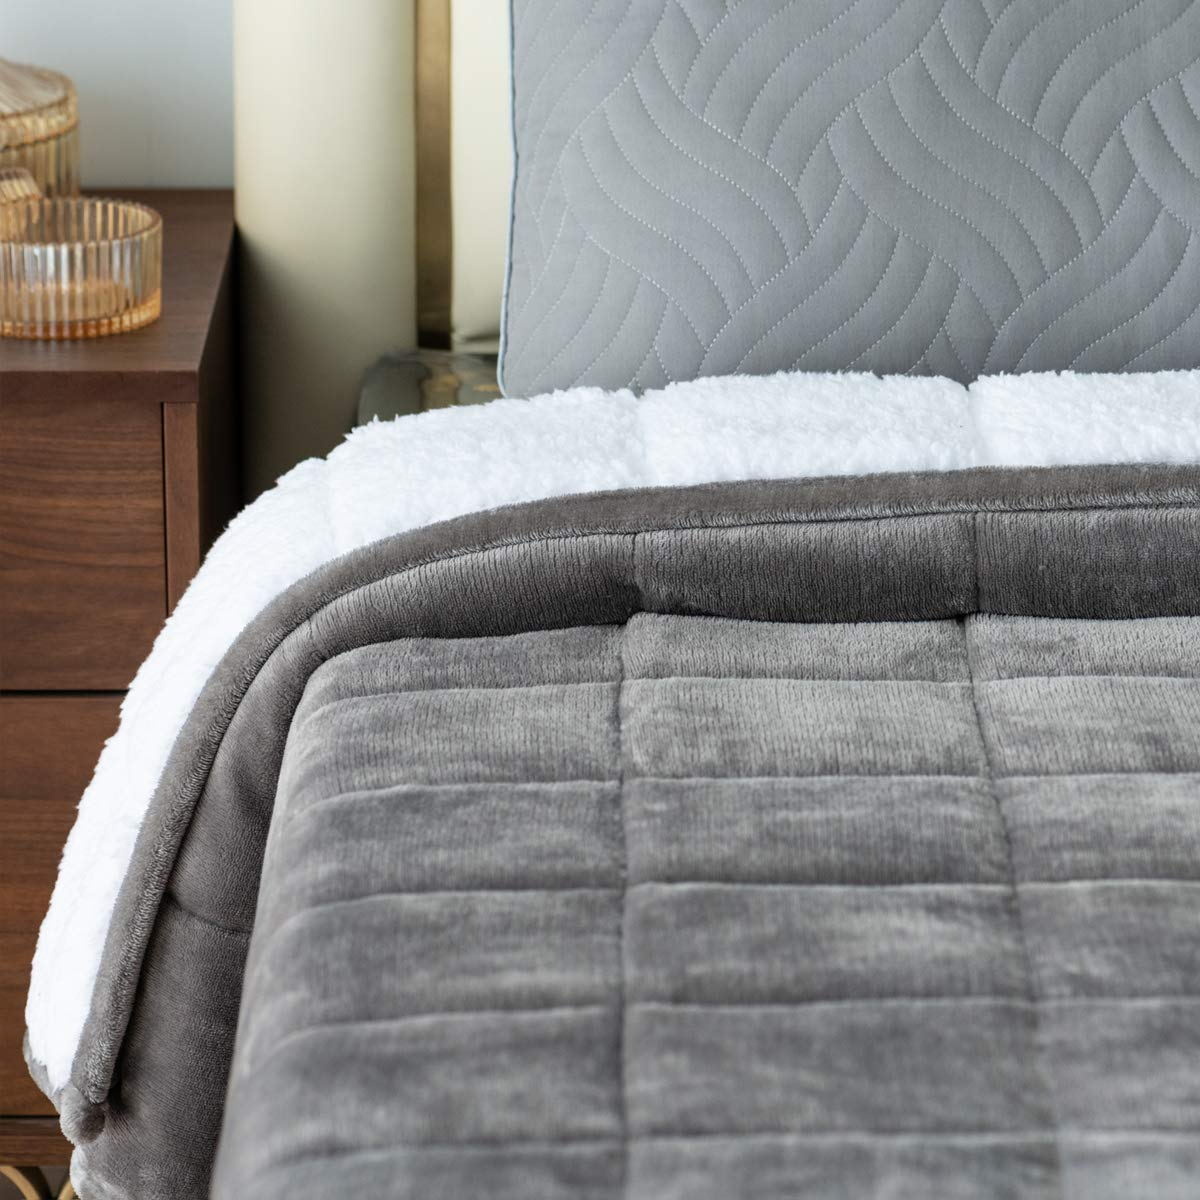 """Mr.Sandman Sherpa Fleece Weighted Blanket 20lbs for Adults Queen Size Bed, Super Soft Luxury Throw Blanket with Premium Ceramic Beads - 60""""x80"""" Grey"""